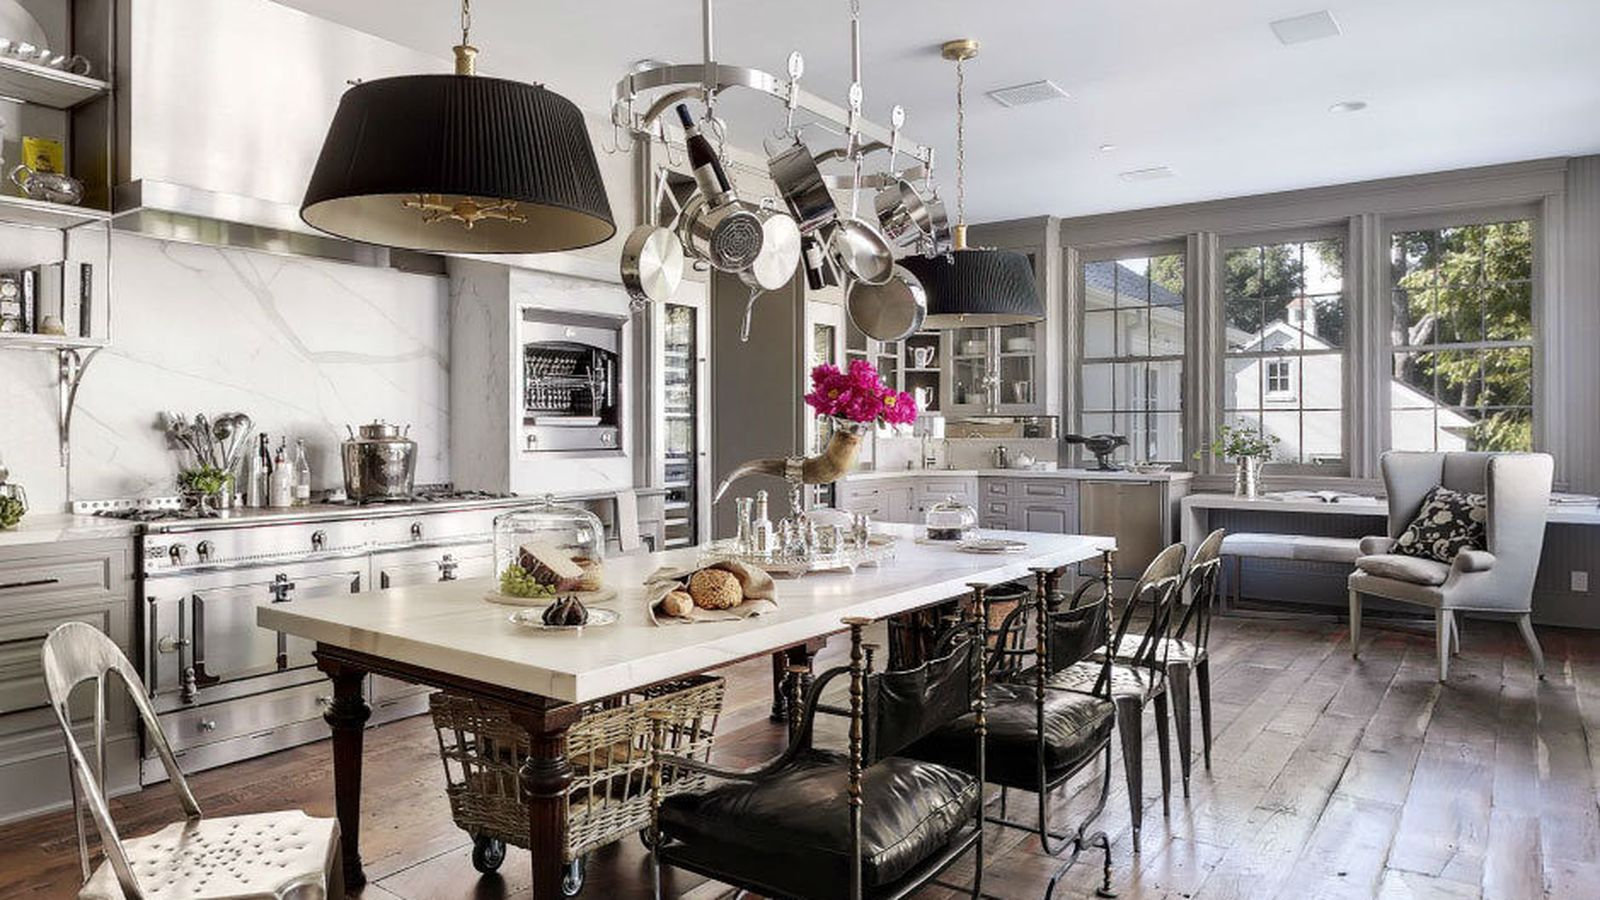 COTE DE TEXAS: 2017–Trends in Interior Design Zillow Digs Home Designs Html on zillow digs dining room, zillow digs fireplaces, zillow digs bathroom,